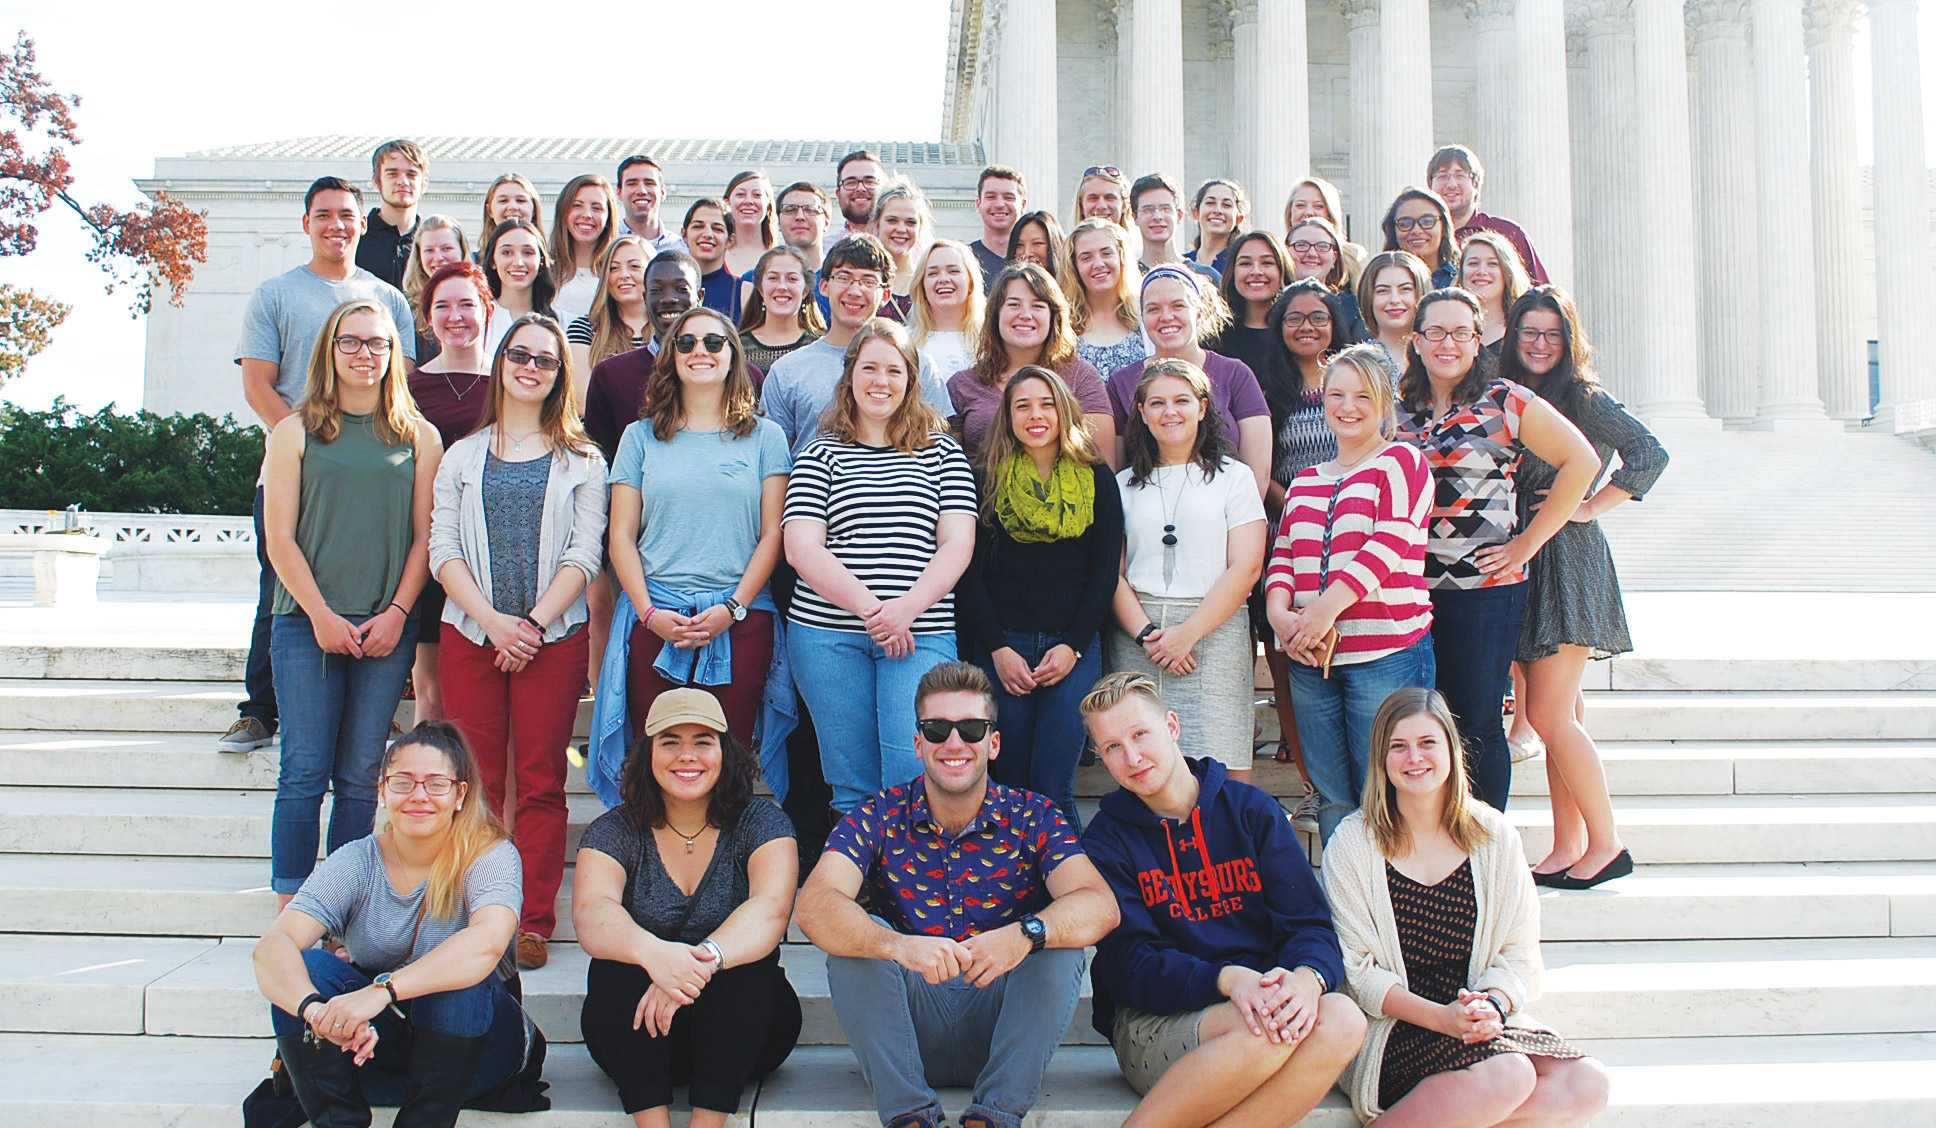 Students from the Lutheran College Washington Consortium pose in Washington D.C.